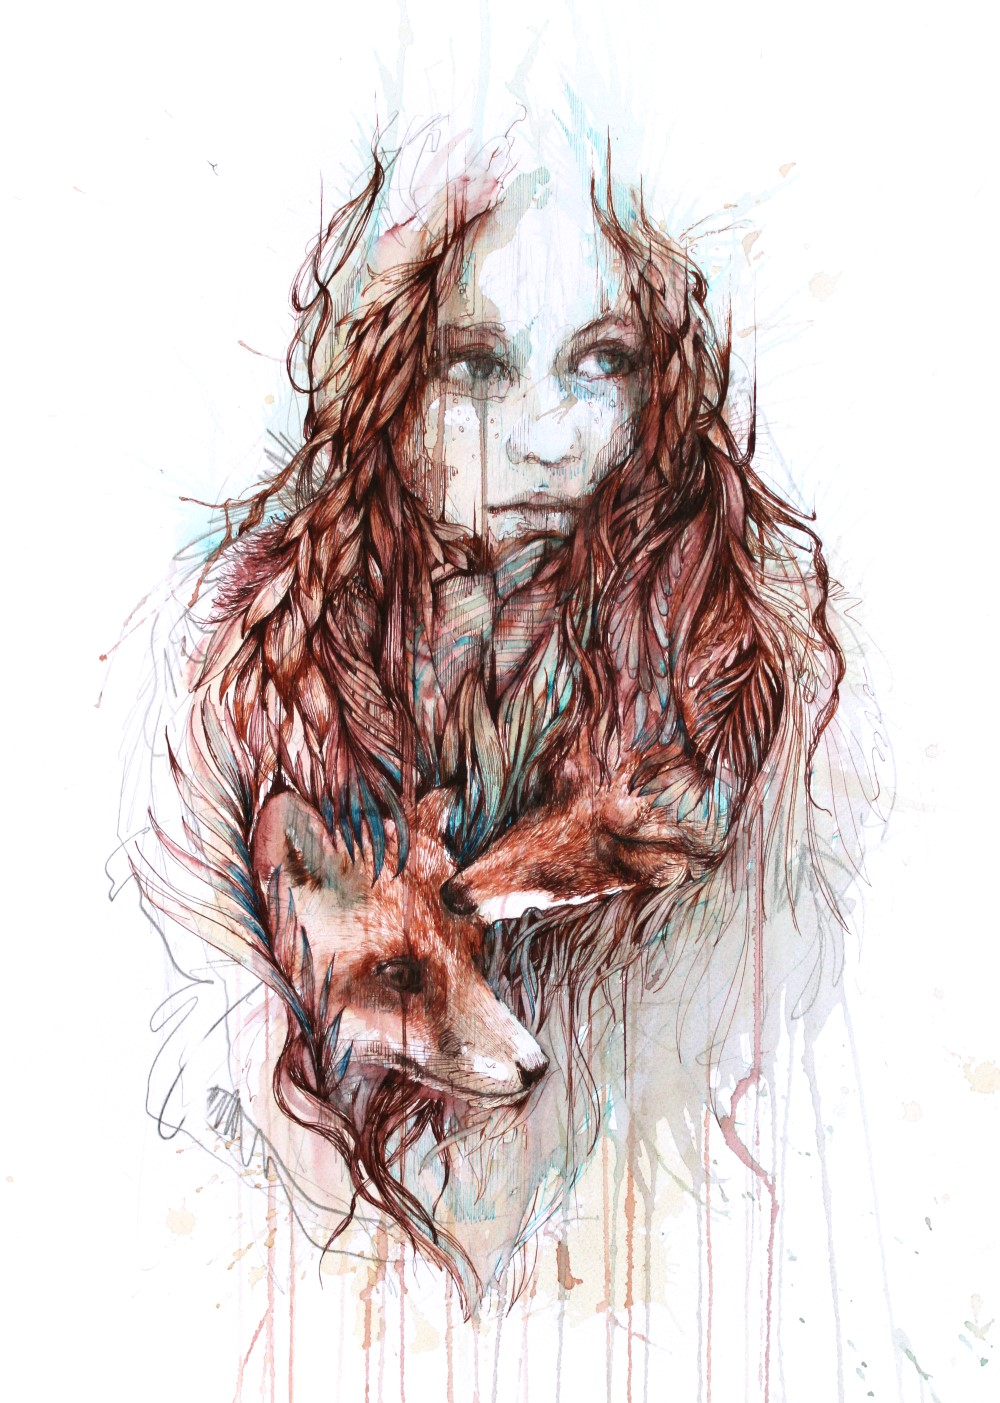 Comfort by Carne Griffiths